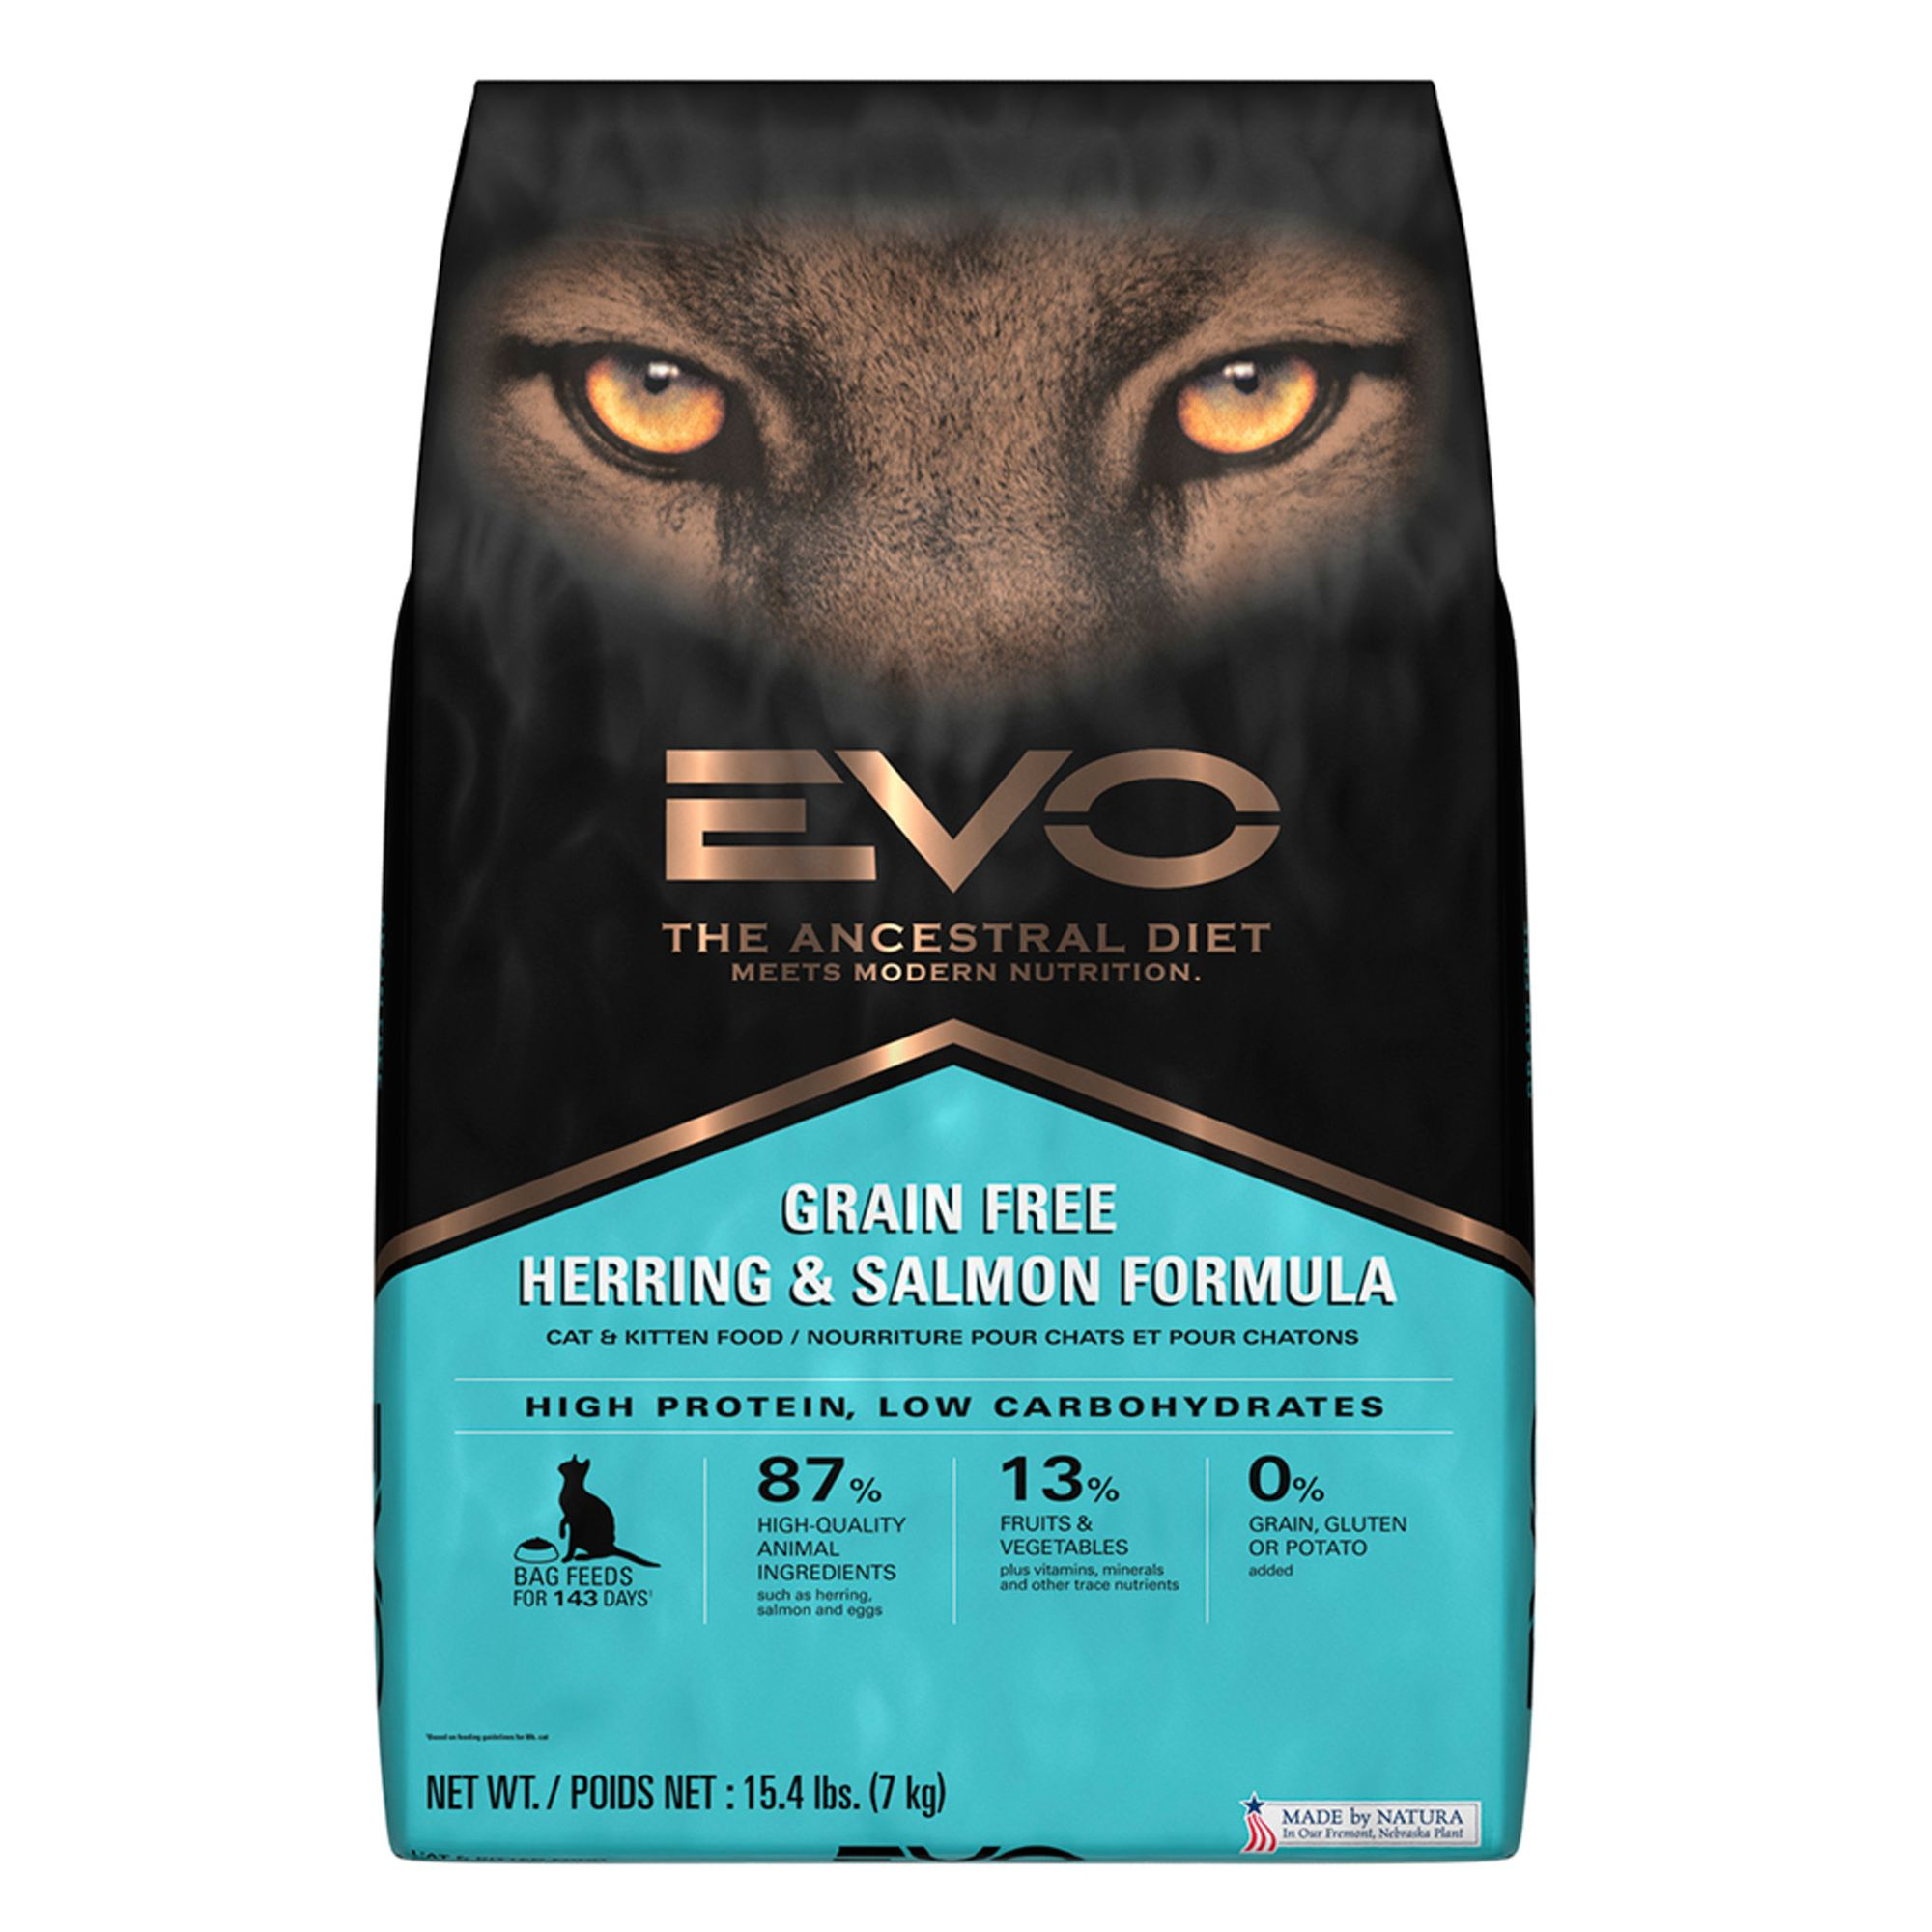 Evo Cat And Kitten Food Grain Free Gluten Free Herring And Salmon Size 15.4 Lb